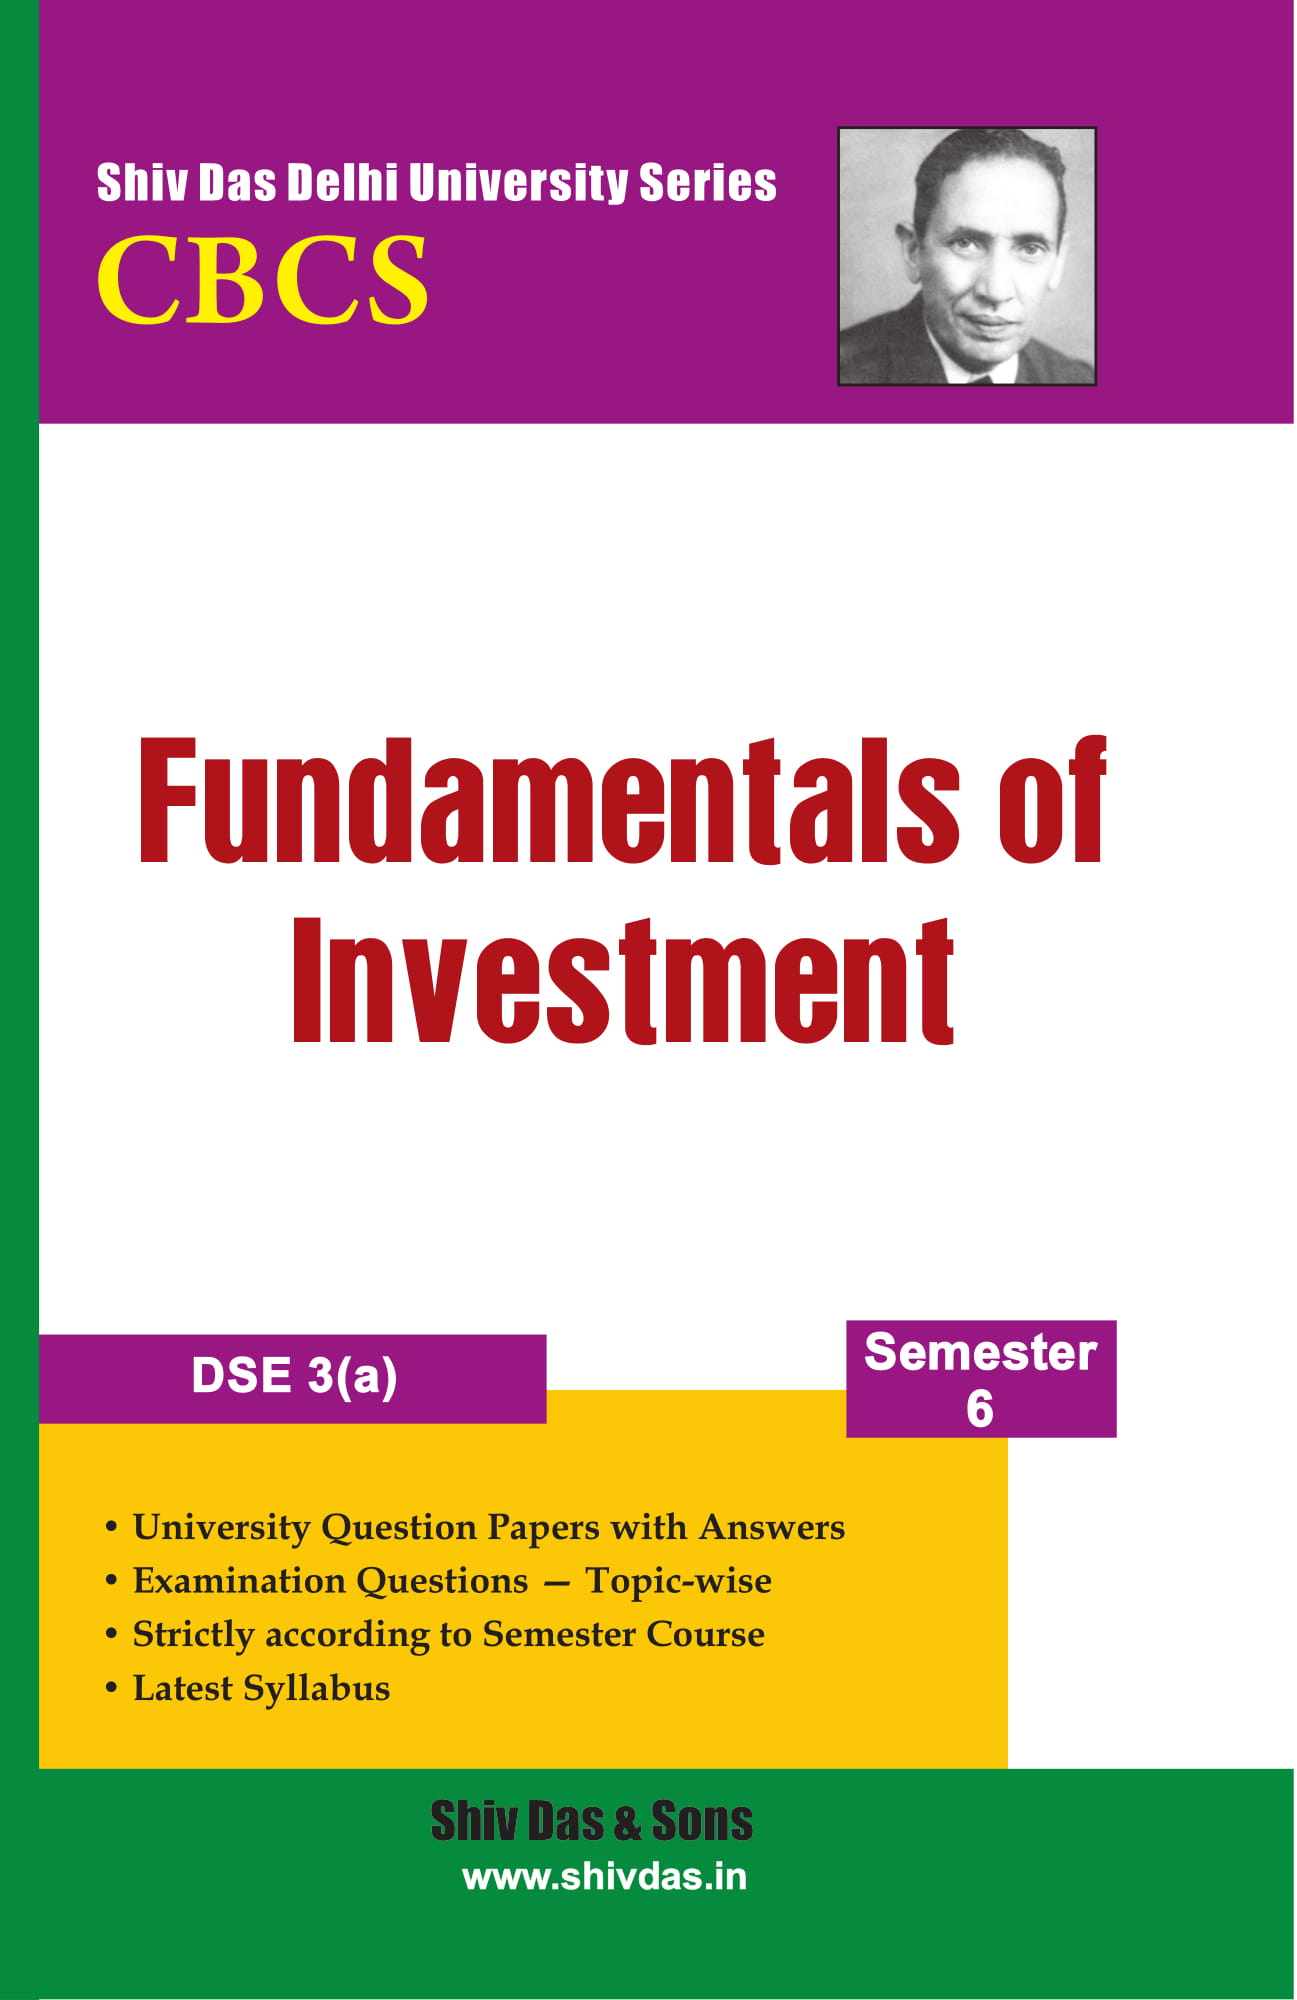 Fundamentals of Investment for B.Com Hons  Semester 6